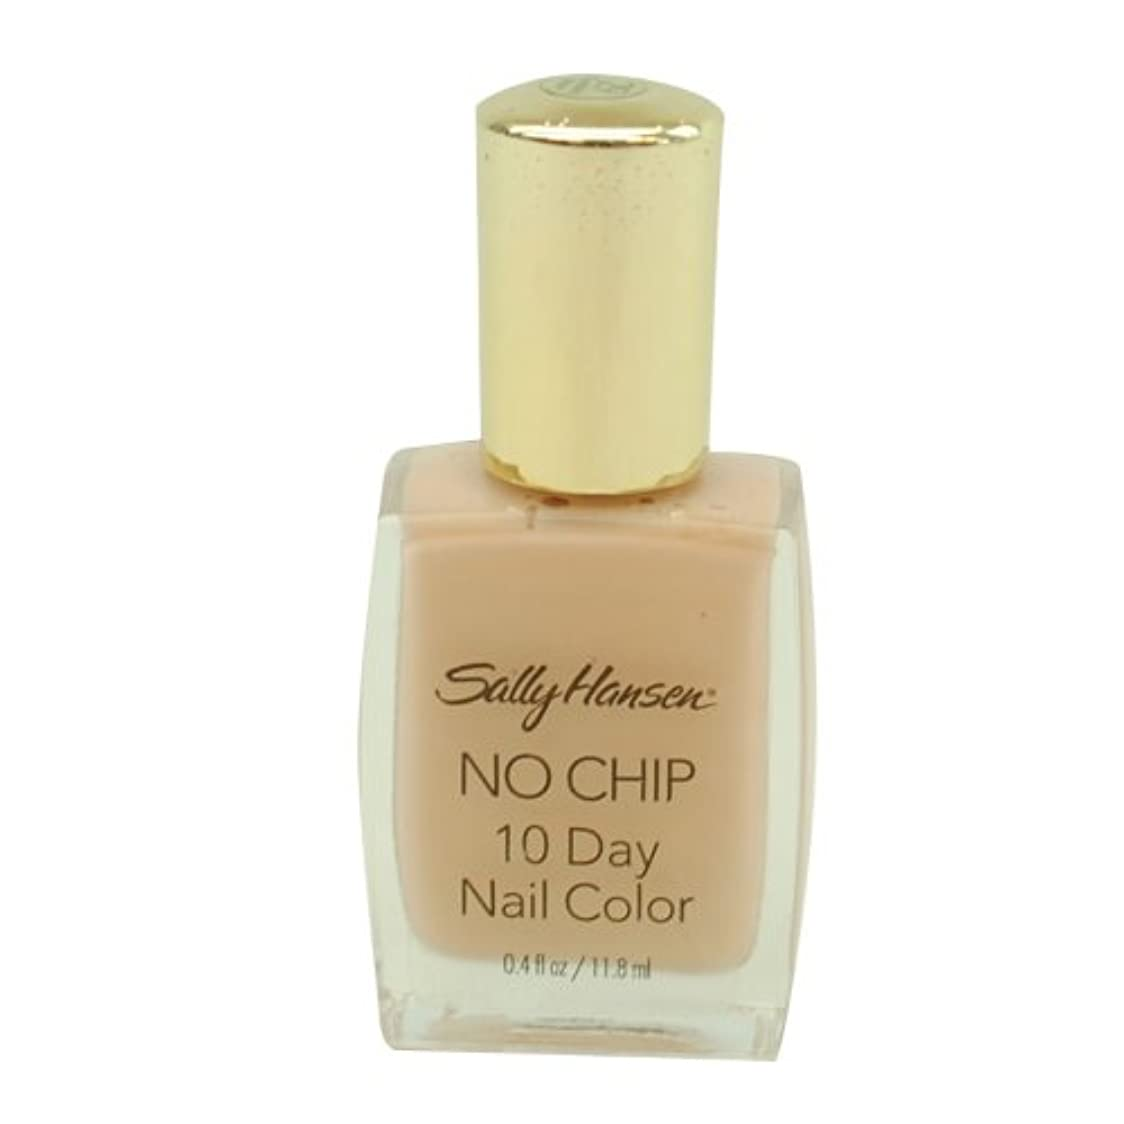 SALLY HANSEN NO CHIP 10 DAY NAIL COLOR #4840-29 TIMELESS ROSE